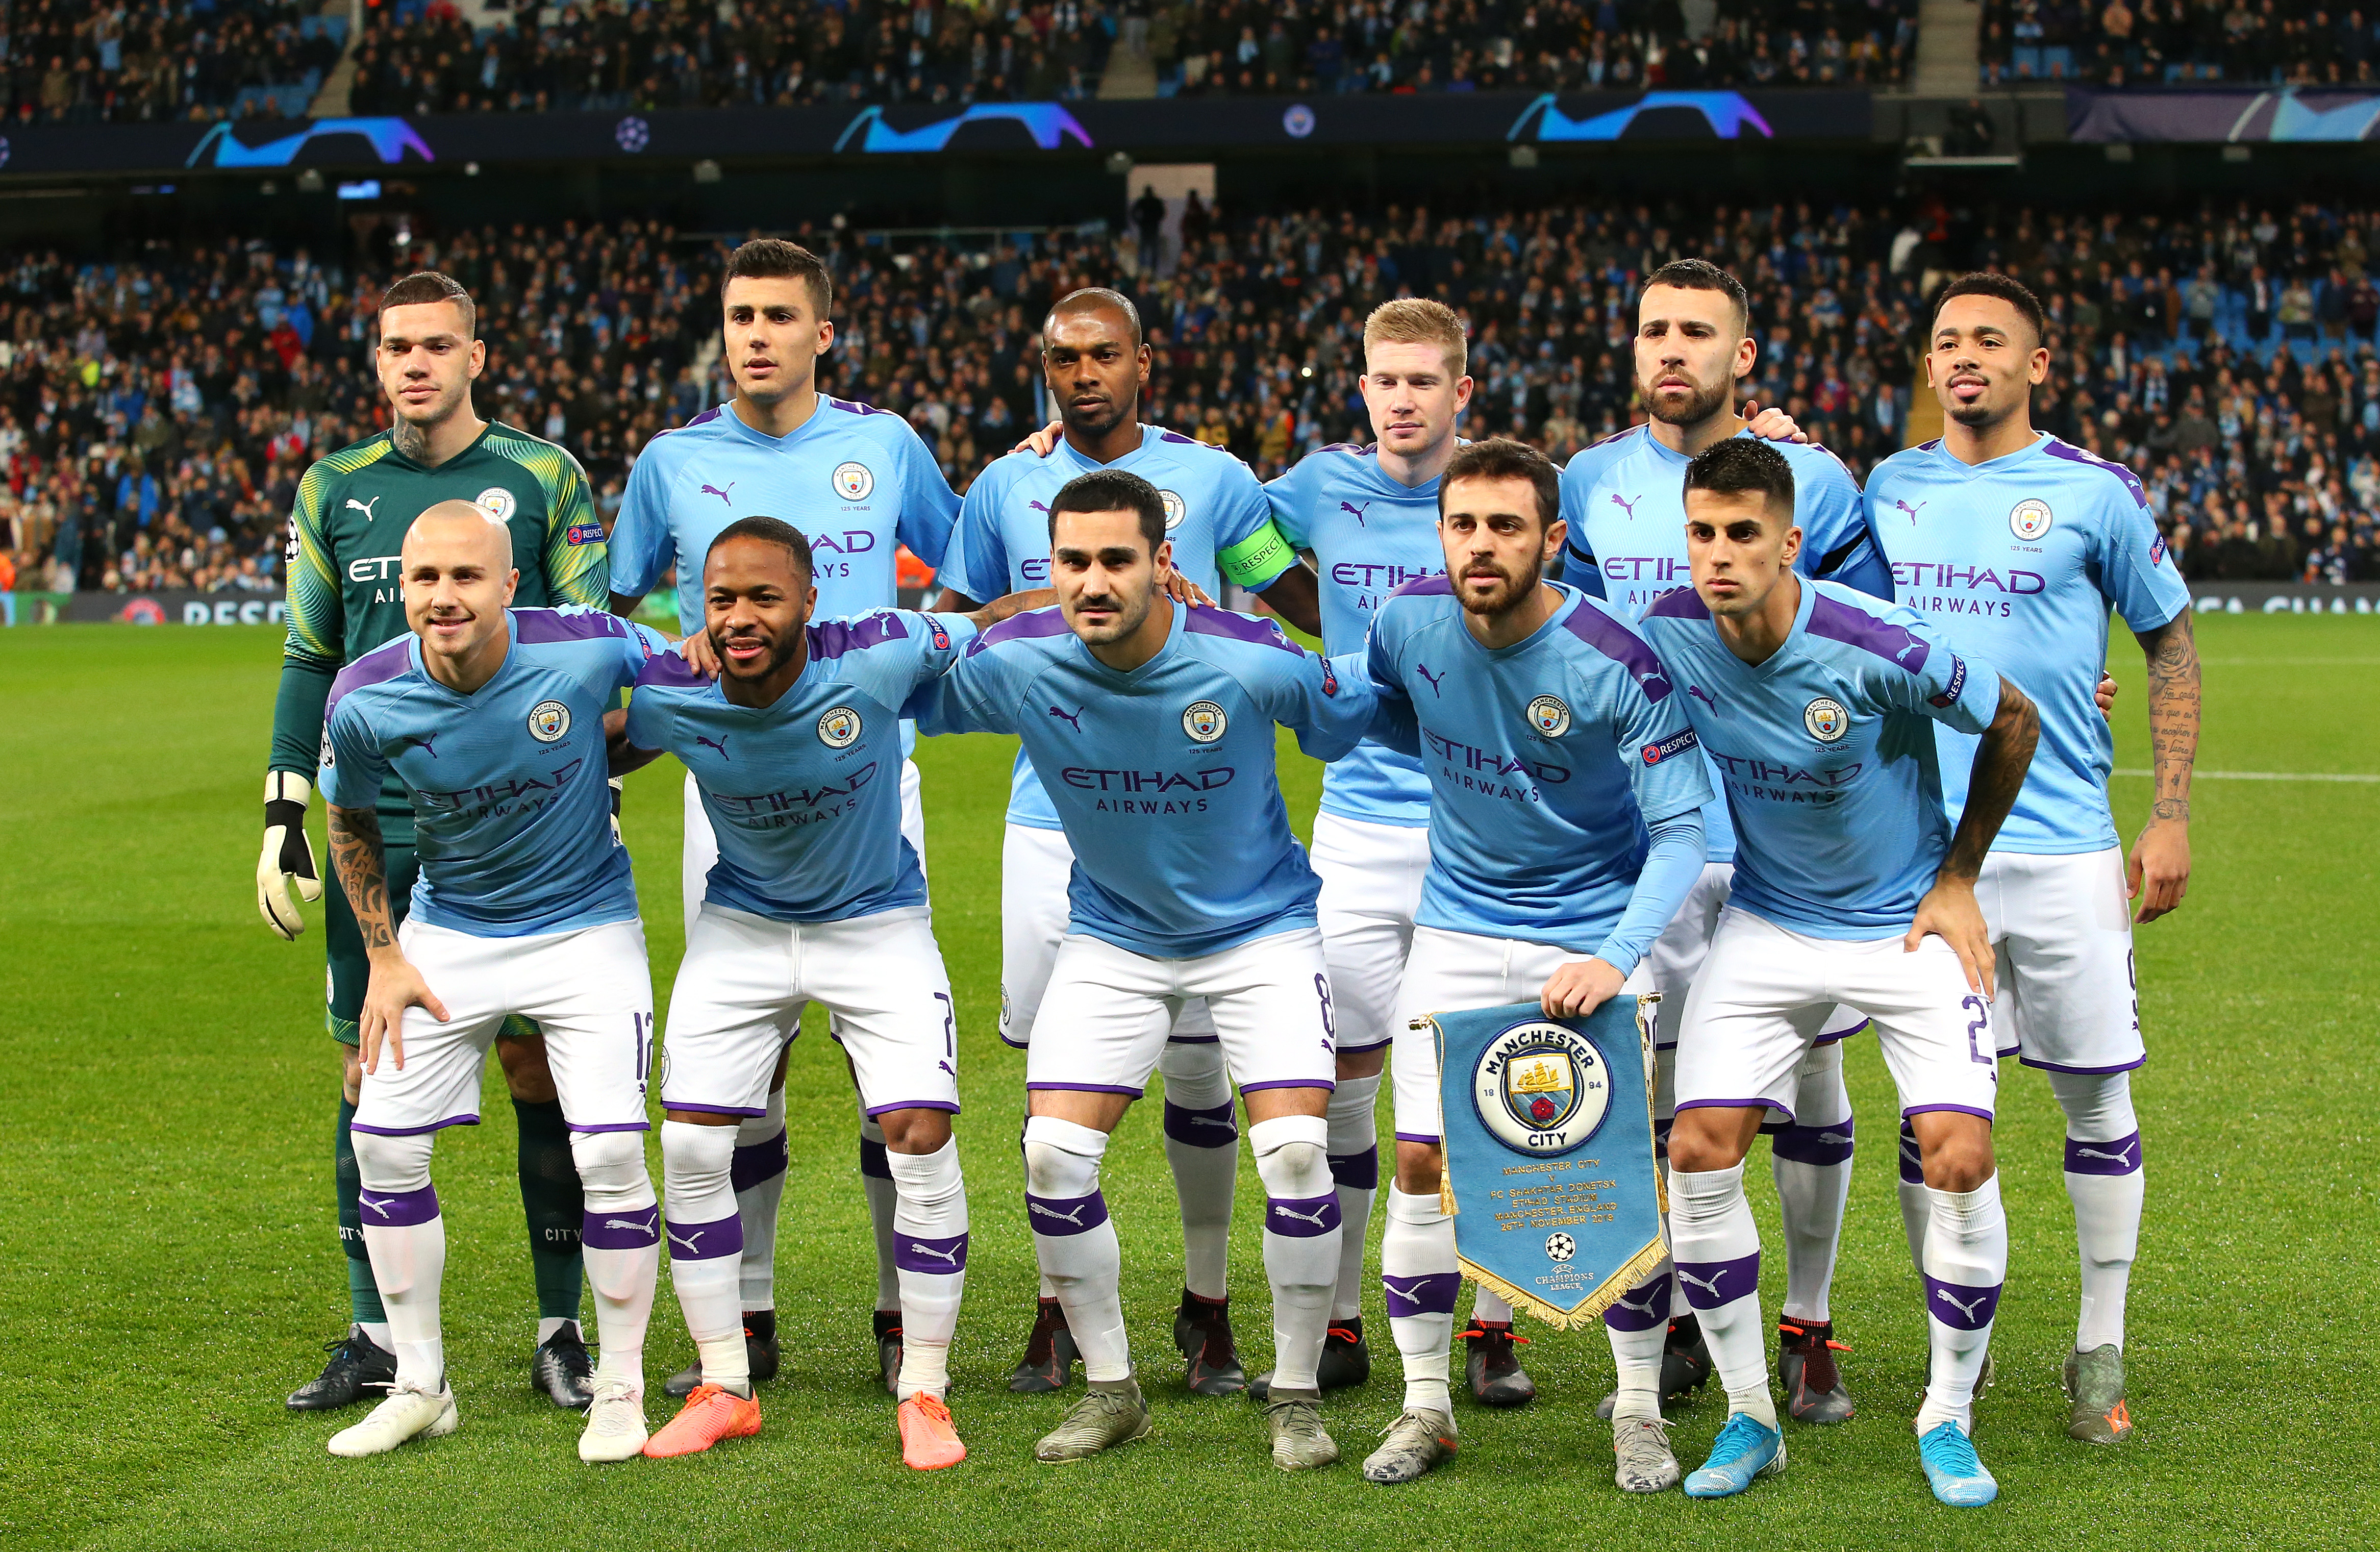 Dell. Alibaba. Now Manchester City? Silver Lake's $500M Bet Brings Tech  Expertise to EPL